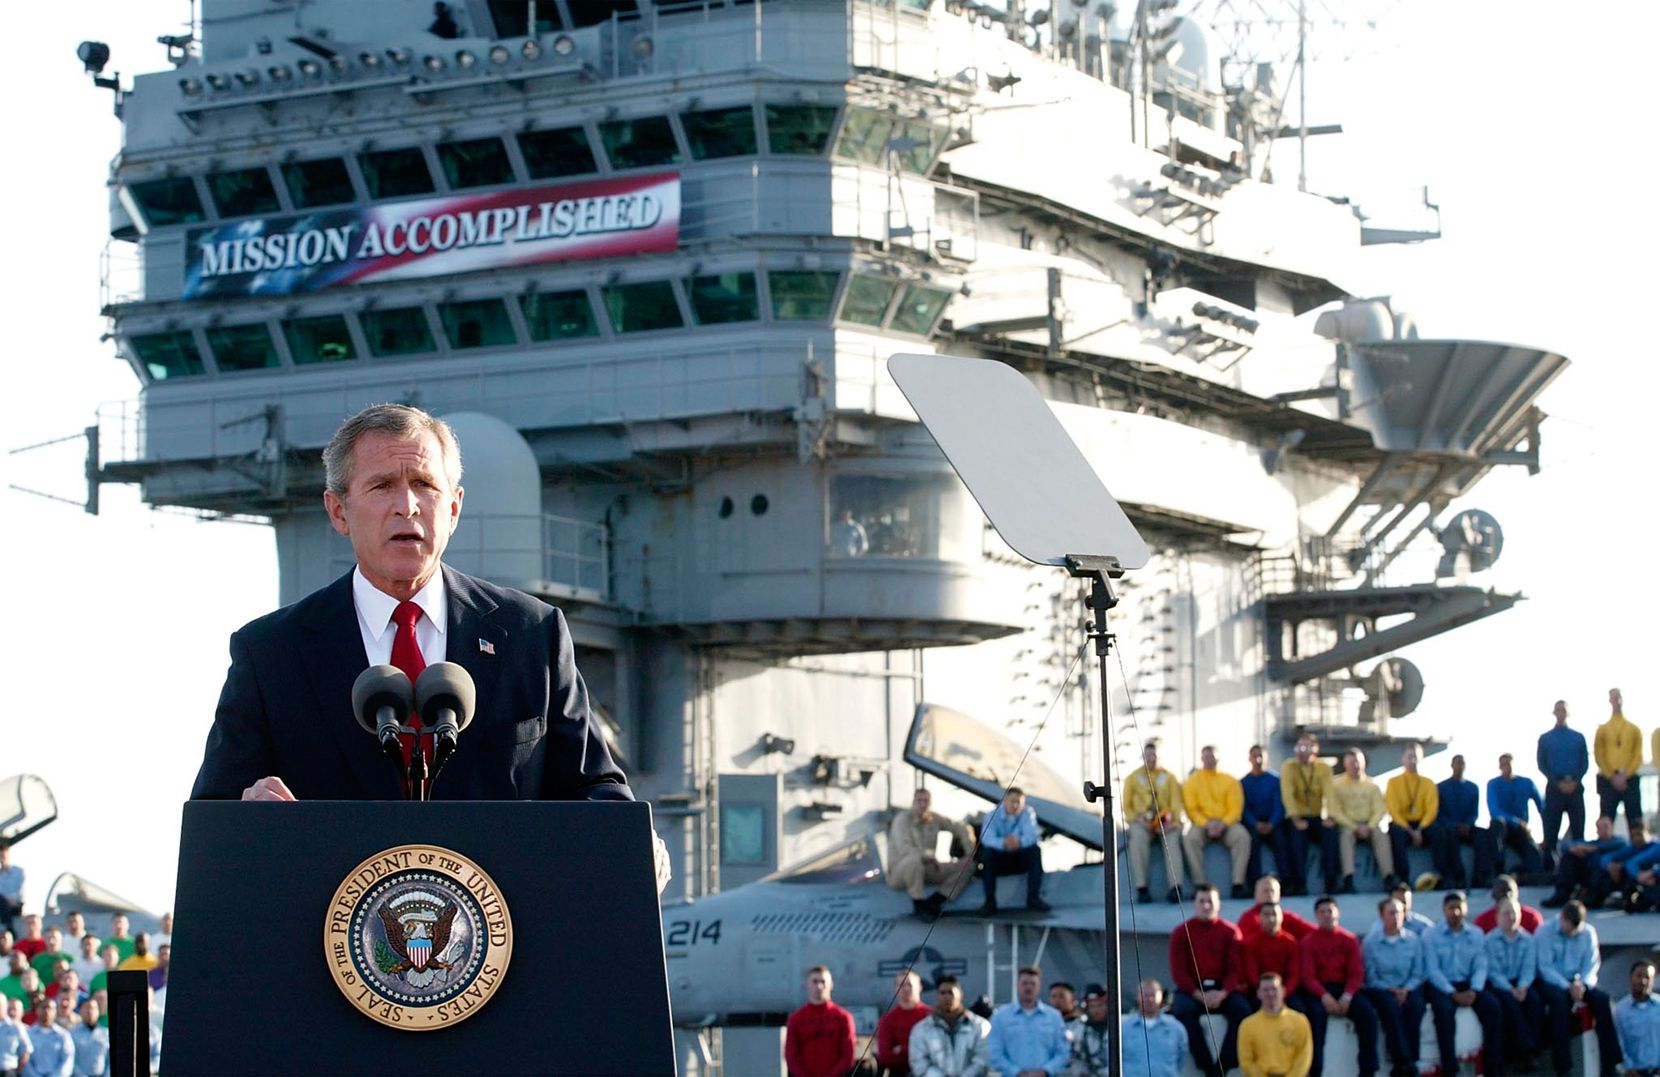 """In this May 1, 2003, photo, President George W. Bush announced that major combat operations had ended in Iraq, speaking to the nation from the deck of the carrier USS Abraham Lincoln off San Diego. Bush would later say it was a mistake to give that speech with a banner behind him that read """"Mission Accomplished,"""" which turned out to be a dramatically premature claim of victory in Iraq."""